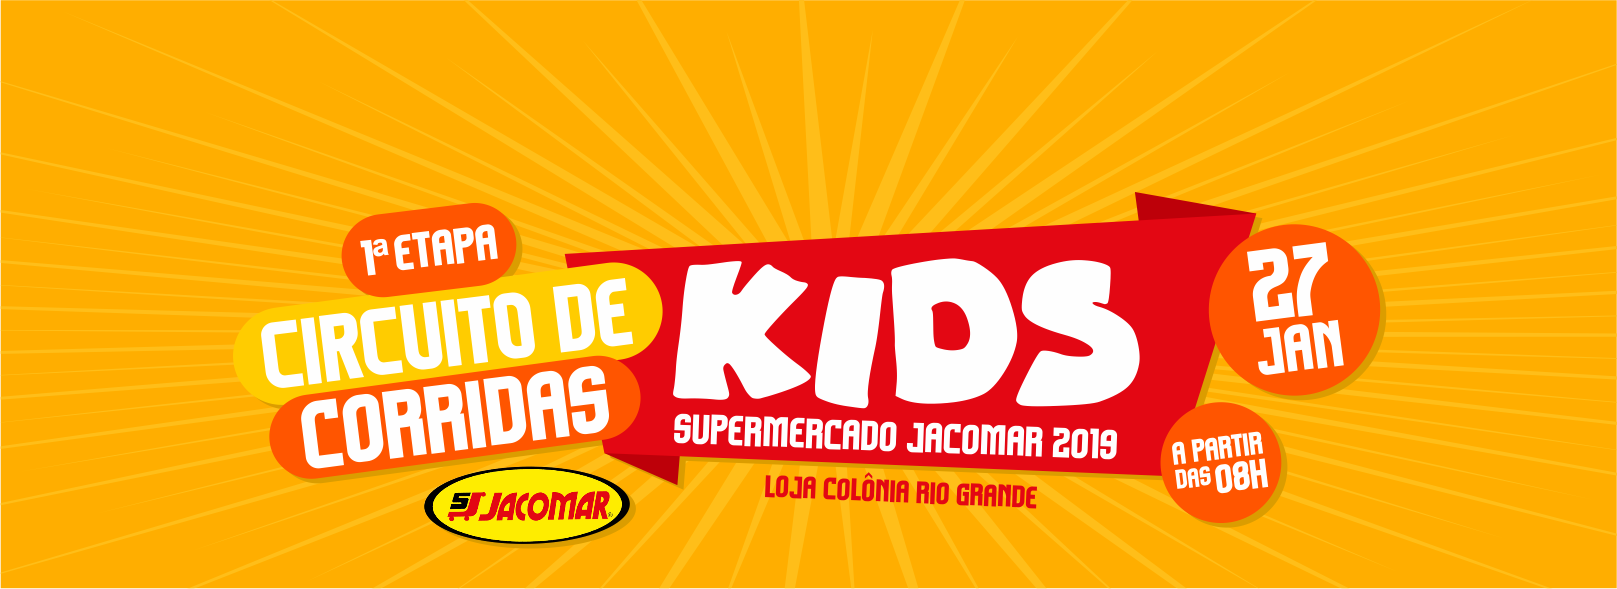 1ª ETAPA do CIRCUITO de CORRIDA KIDS SUPERMERCADO JACOMAR